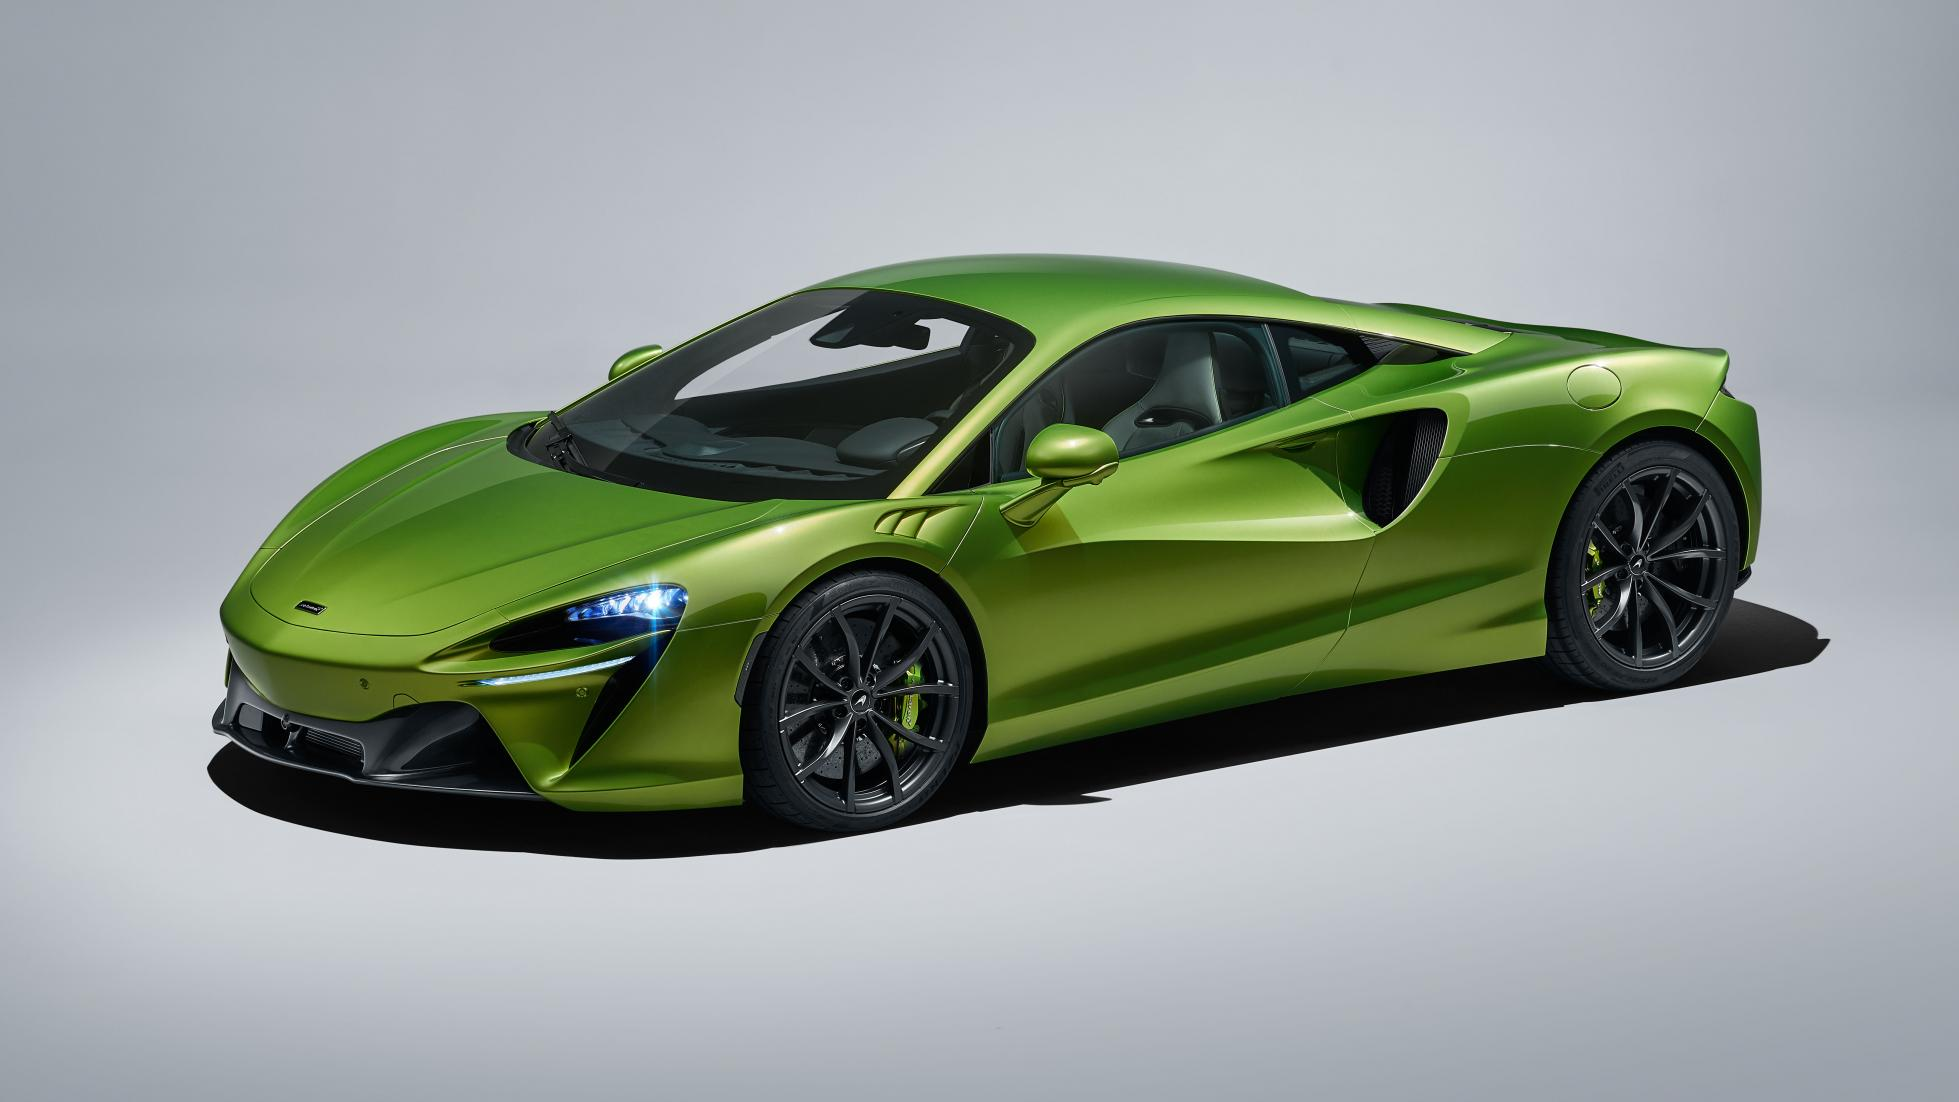 McLaren Artura in Flux Green